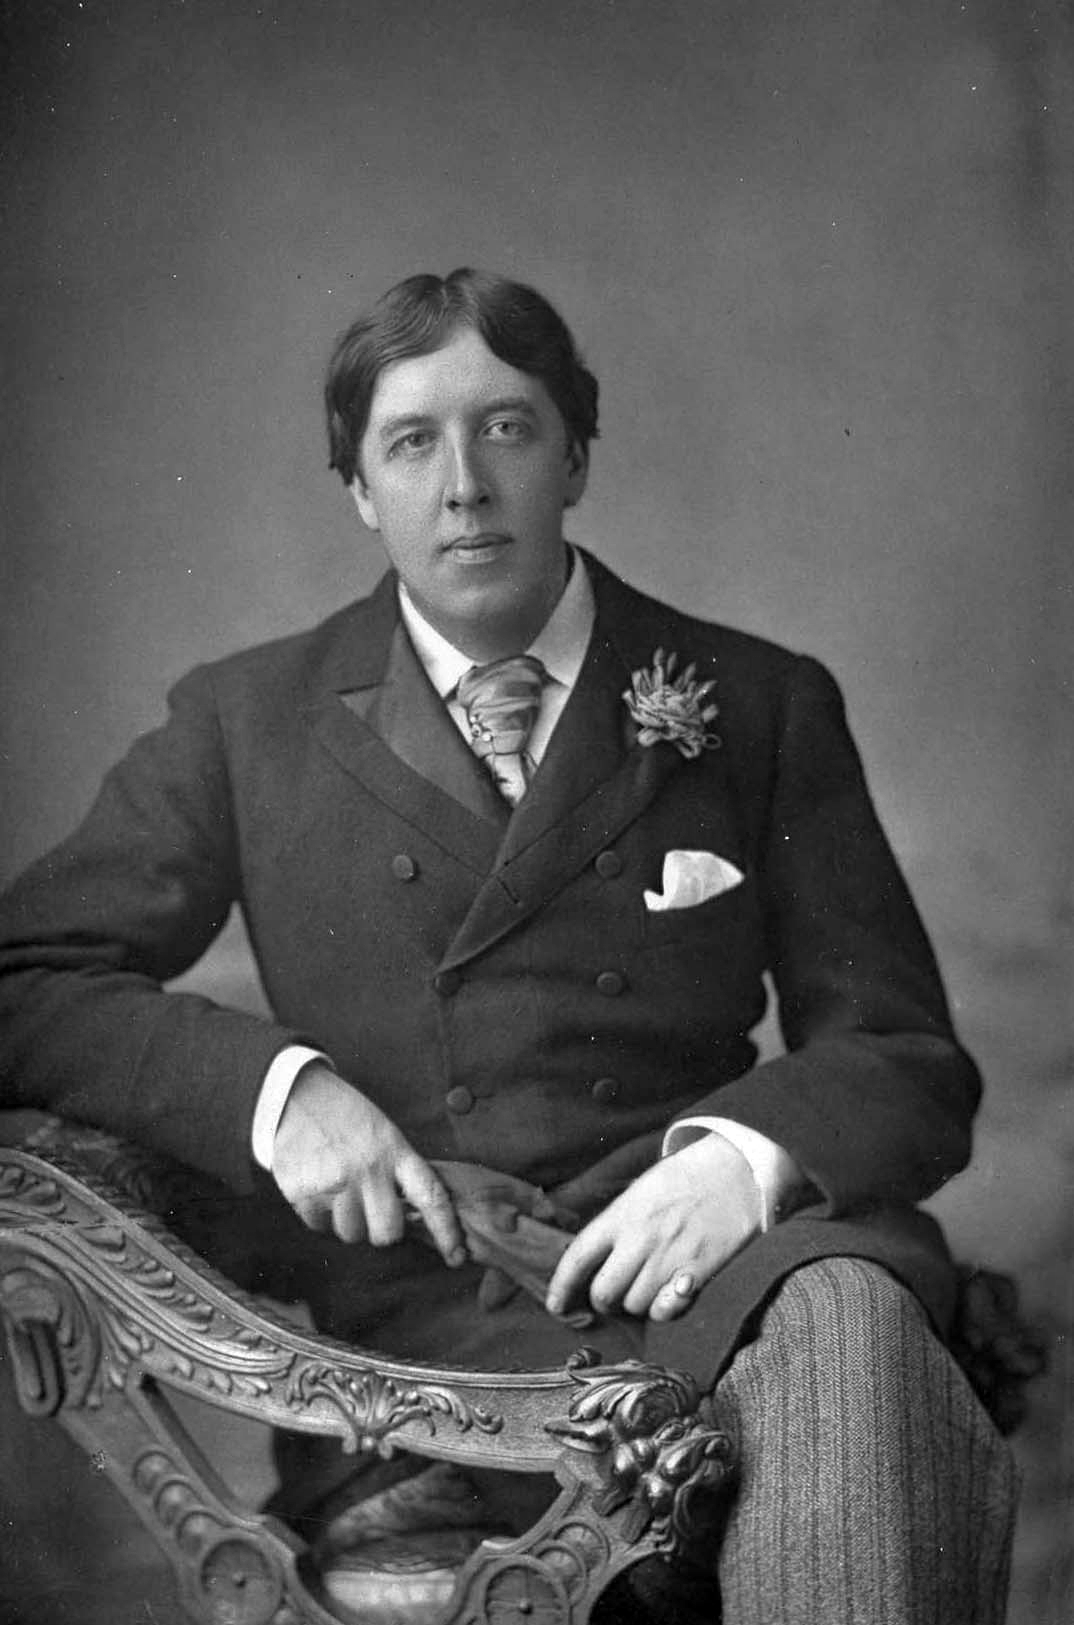 Datei:Oscar Wilde (1854-1900) 1889, May 23. Picture by W. and D. Downey.jpg